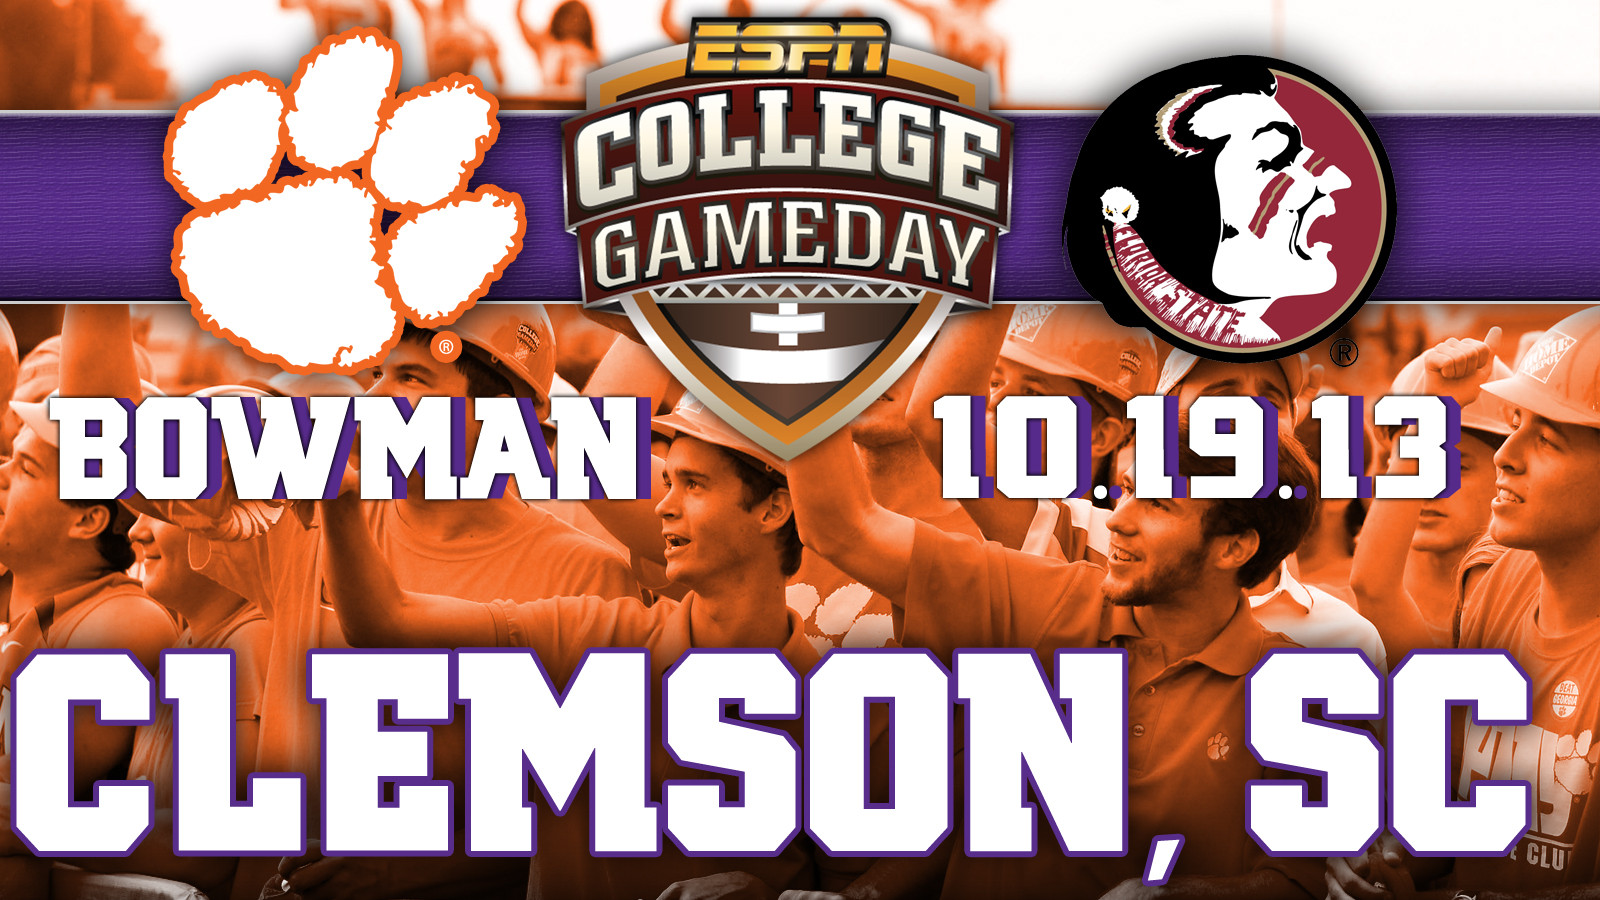 ESPN College GameDay Returning to Clemson on October 19